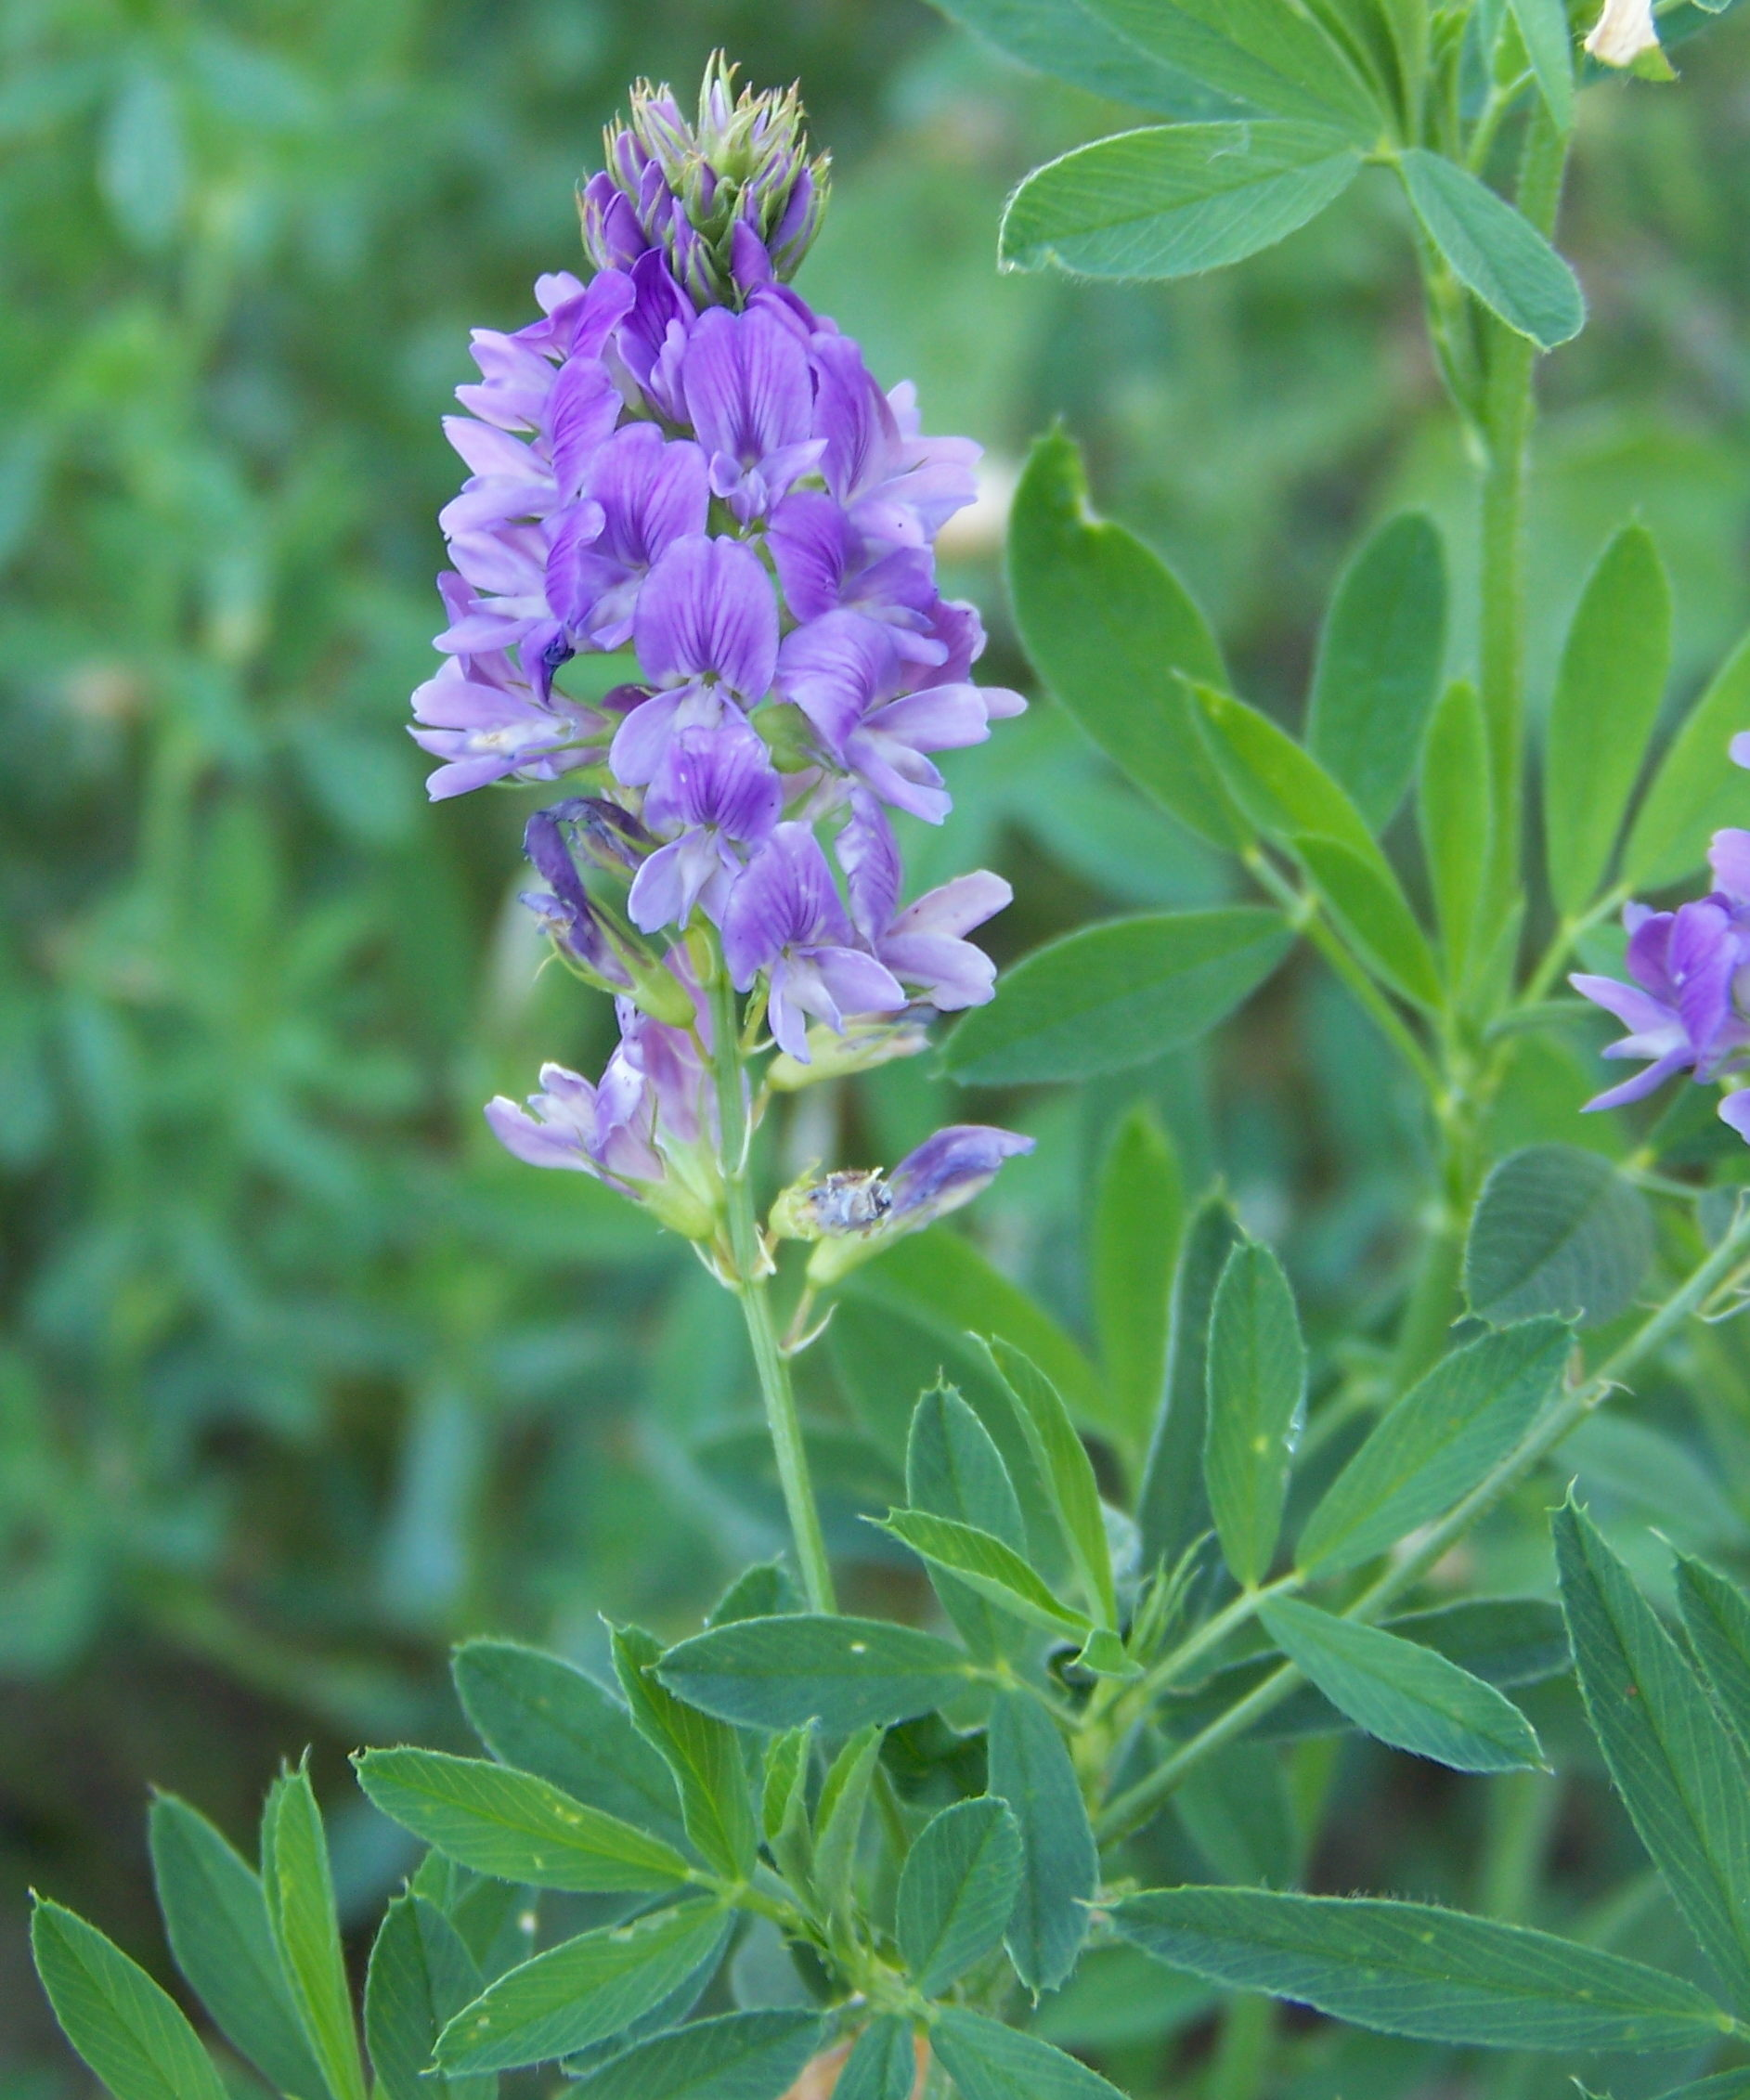 Alfalfa with purple bloom